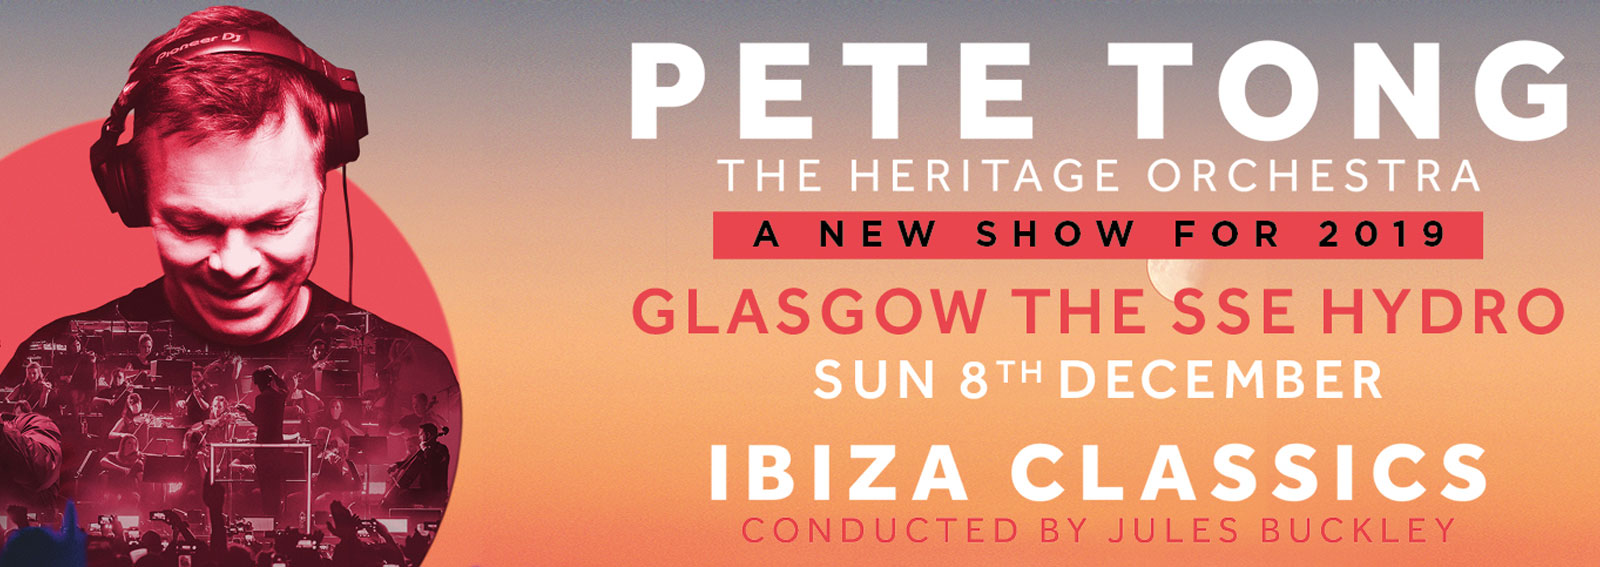 Pete Tong Ibiza Classics Hydro 8th December 2019